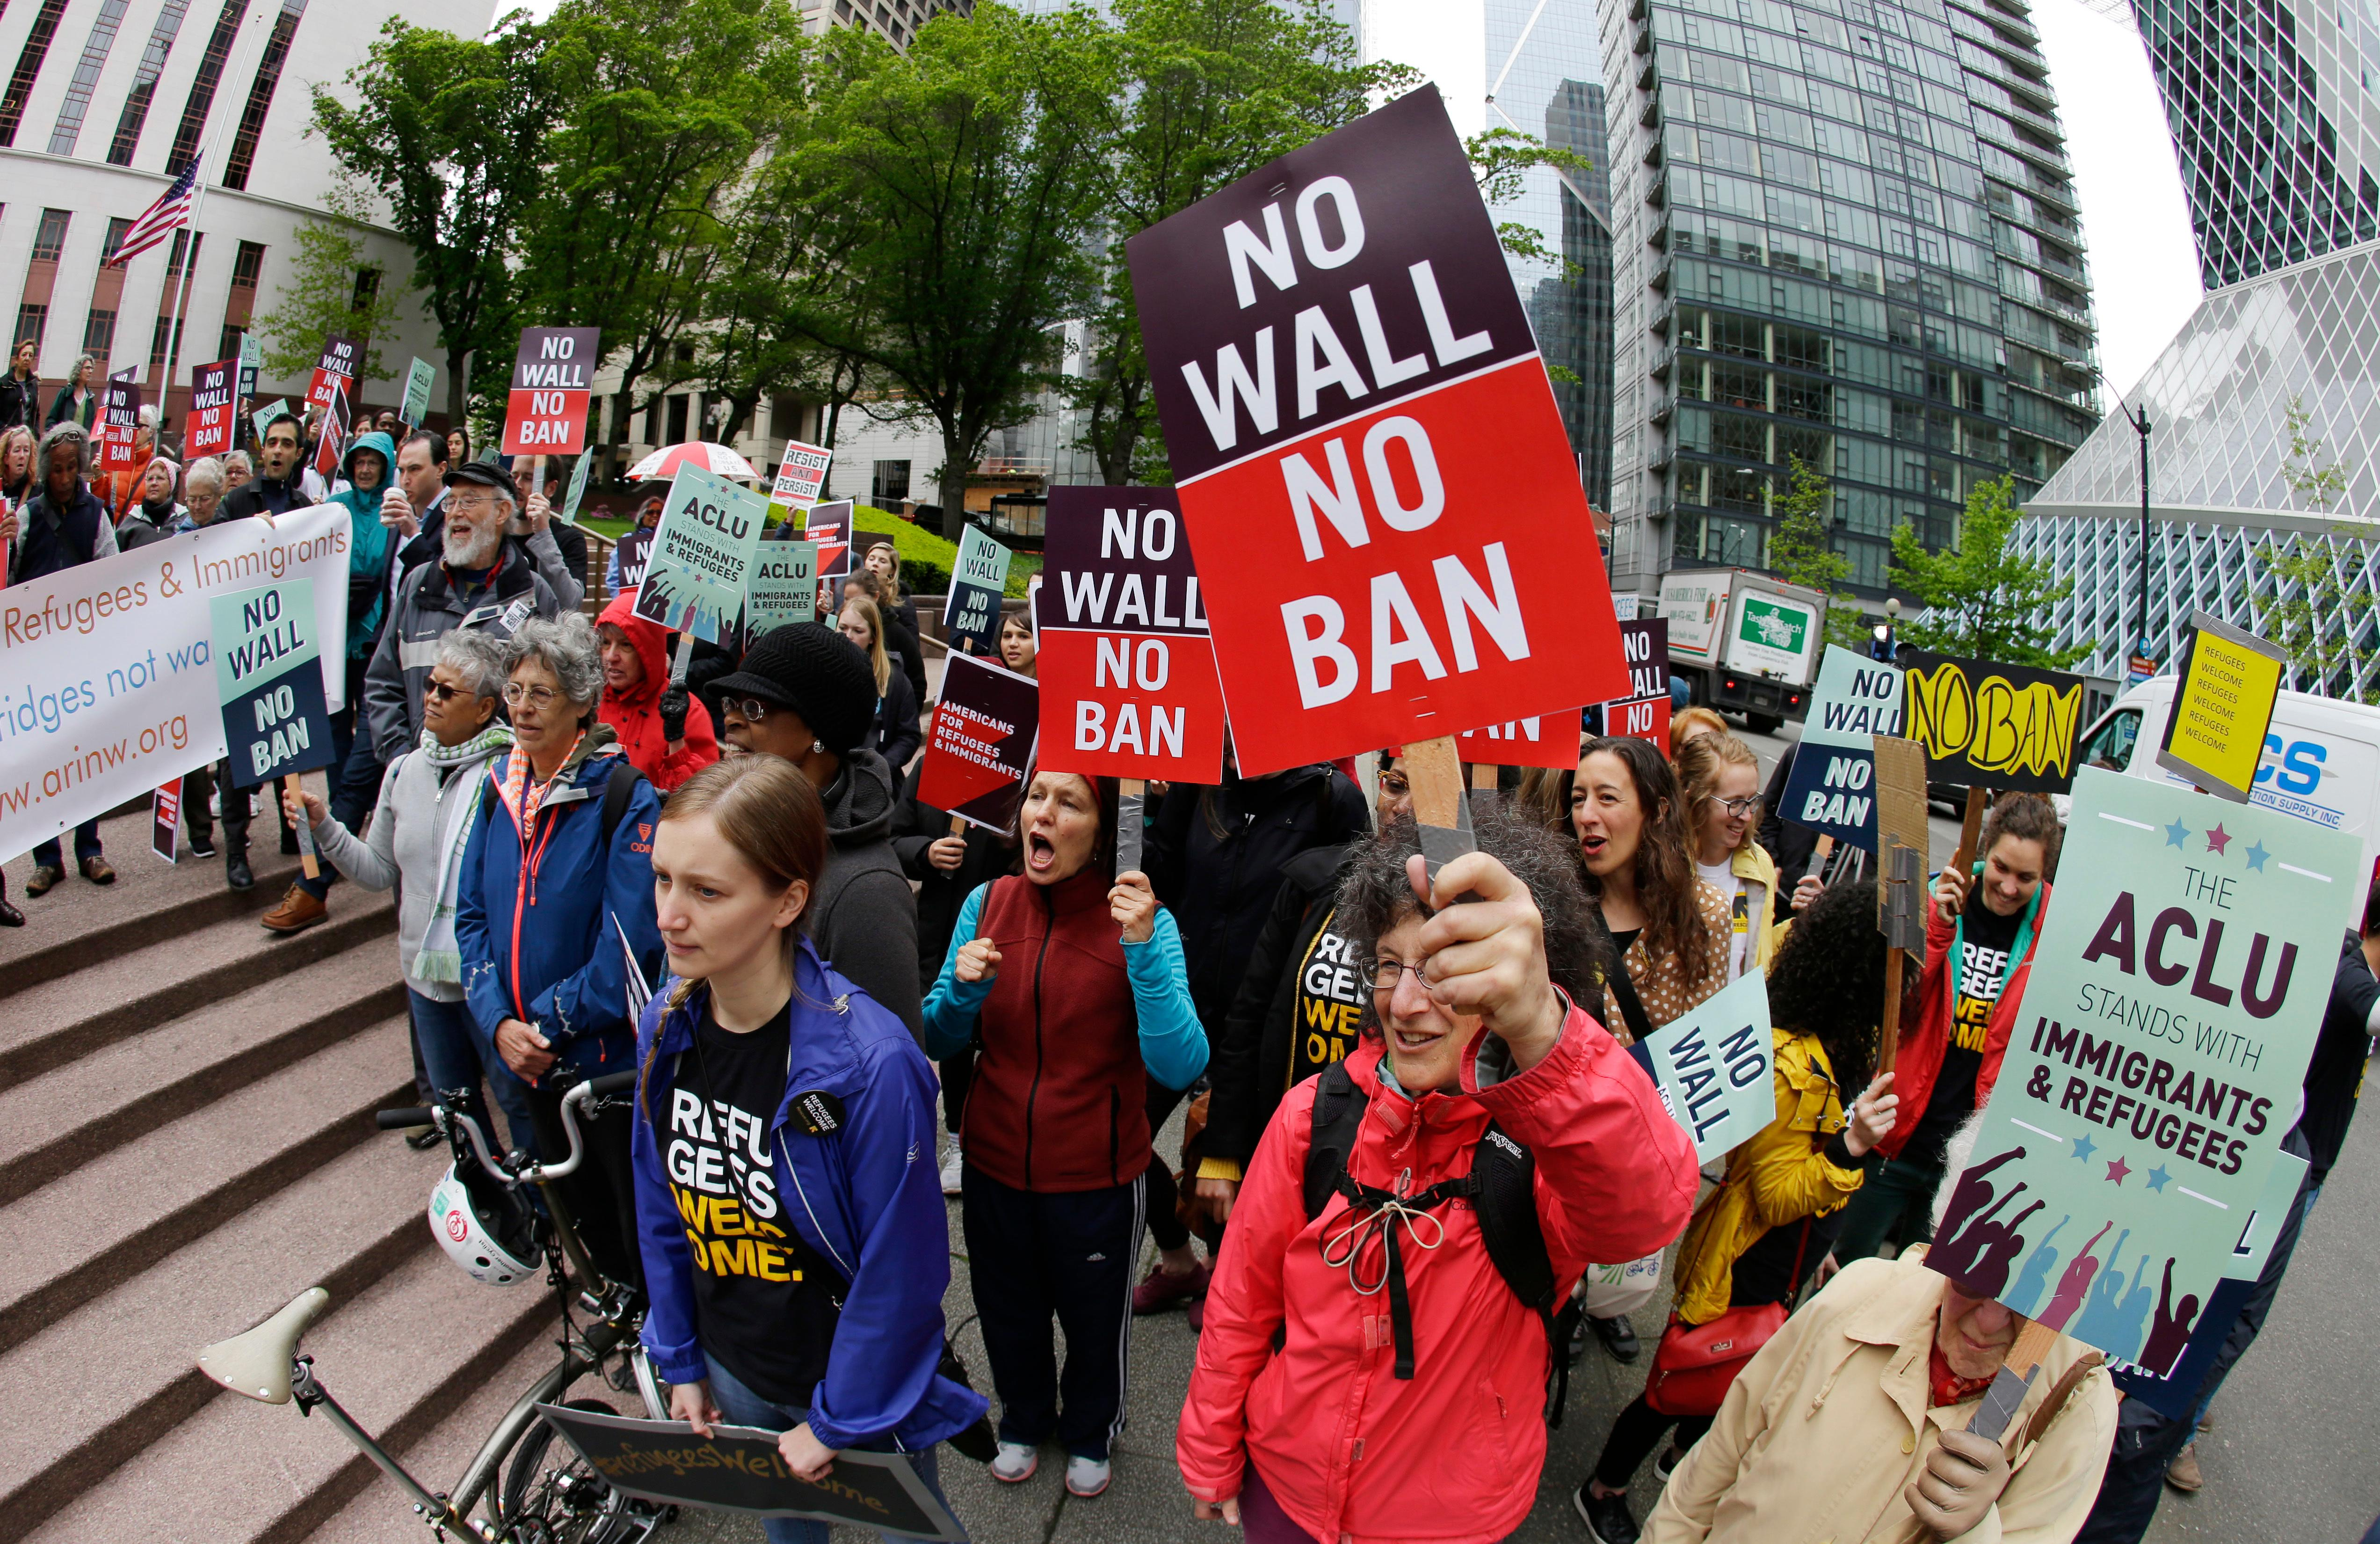 FILE - In this May 15, 2017 file photo, protesters wave signs and chant during a demonstration against President Donald Trump's revised travel ban outside a federal courthouse in Seattle. (AP Photo/Ted S. Warren, File)